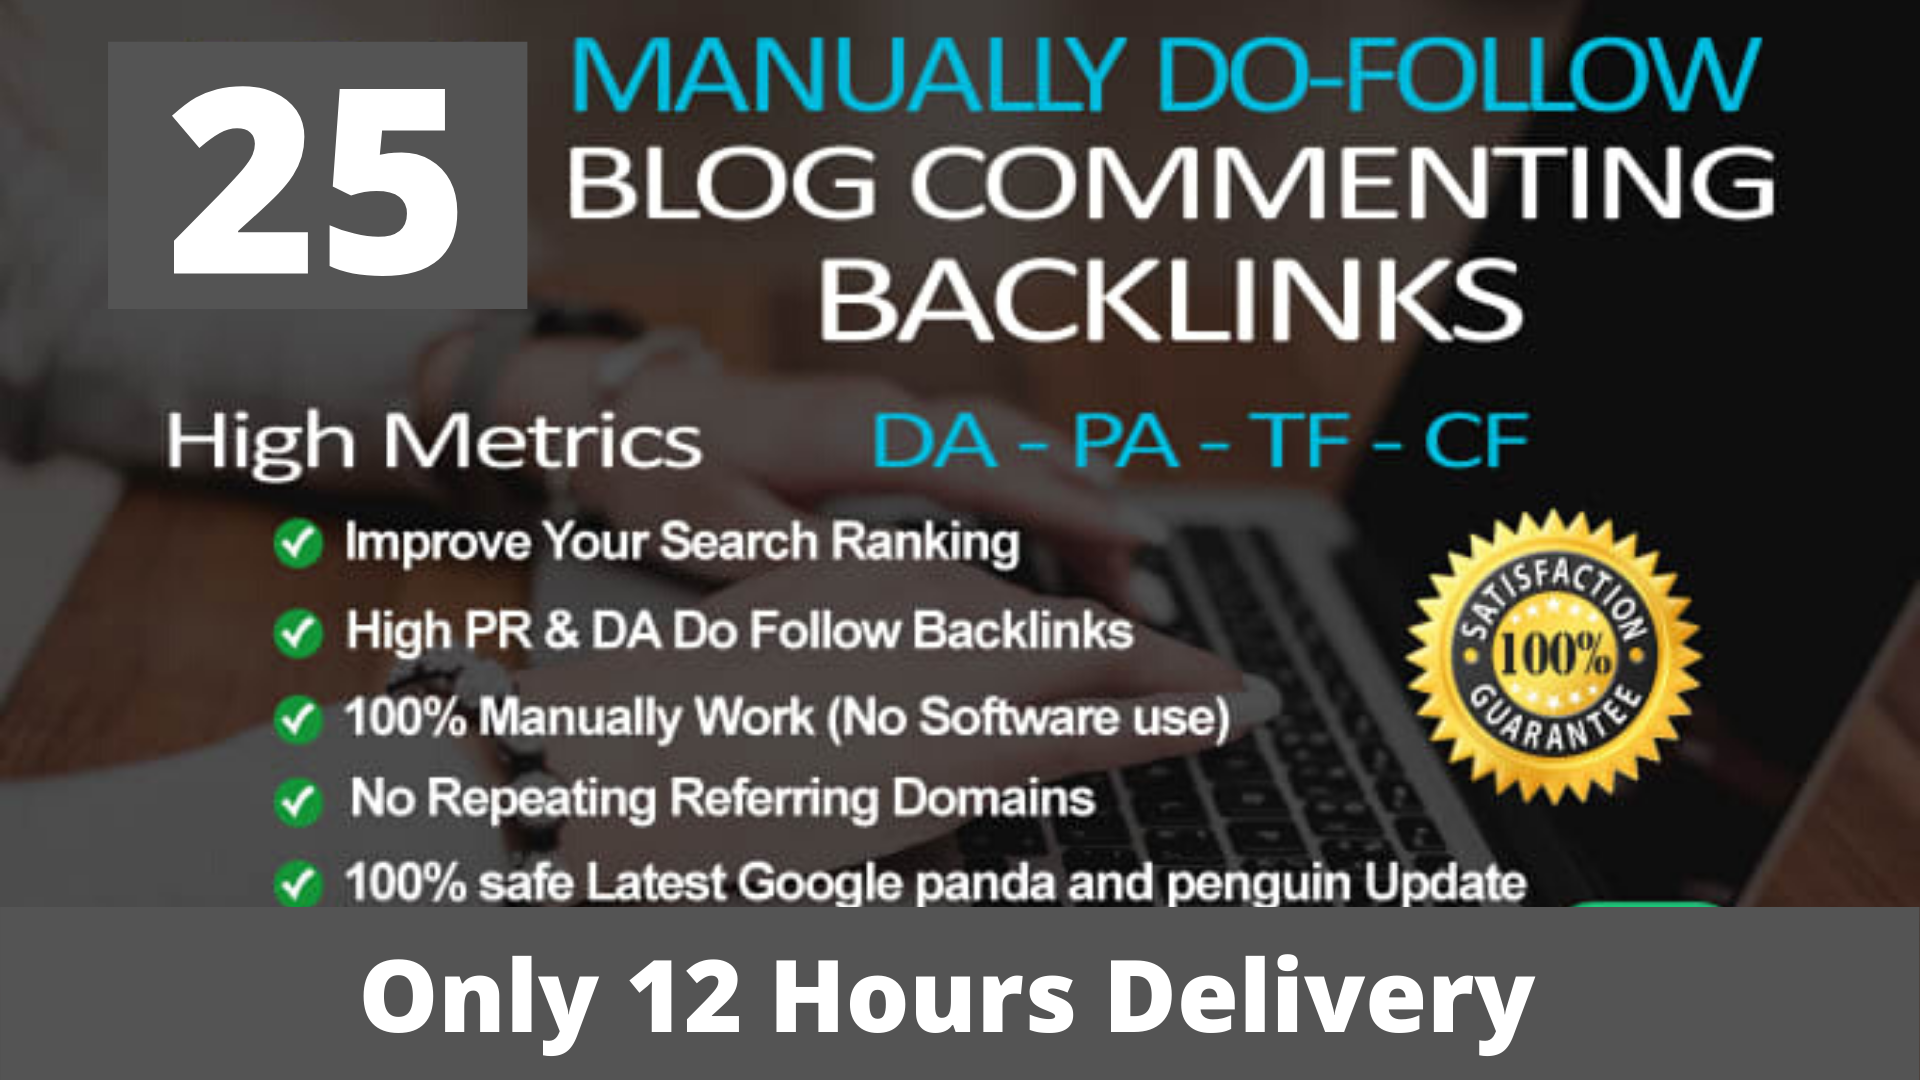 Instantly do 25 high quality dofollow blog comments backlinks